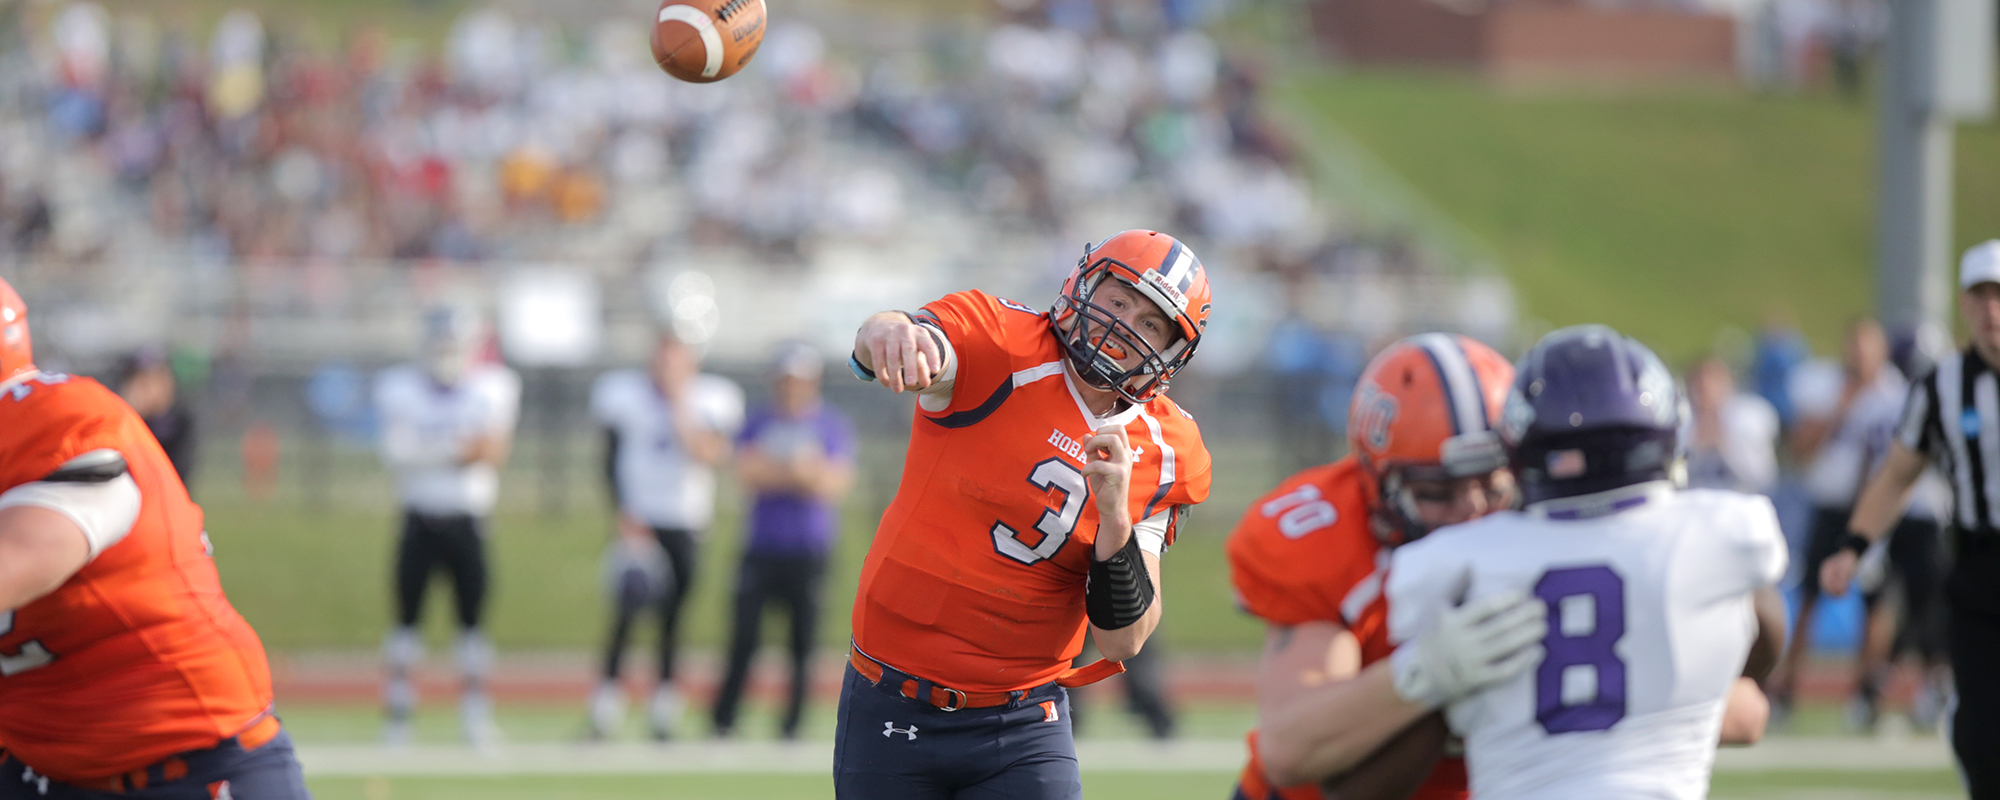 Late Push Carries Mount Union Past Hobart